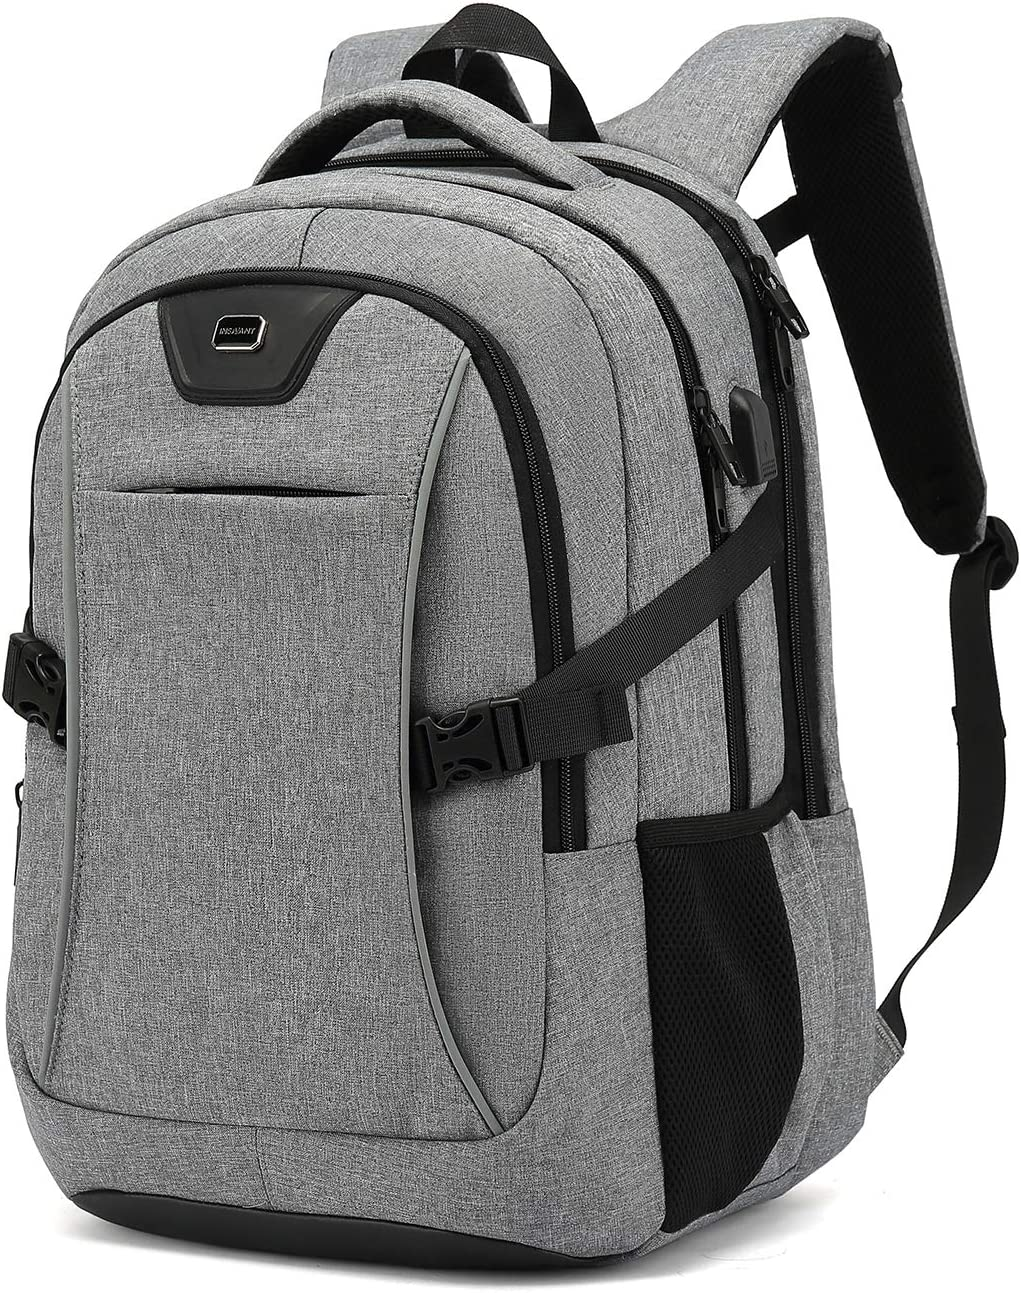 Travel Laptop Backpack, Drop Protection Computer Backpacks Durable Hiking Work Business Daypack Water Resistant Schoolbag with USB Charging Port, Gifts for Men Women Boys Girls fits 15.6 Inch Laptops (15.6 Inch, Light Grey)